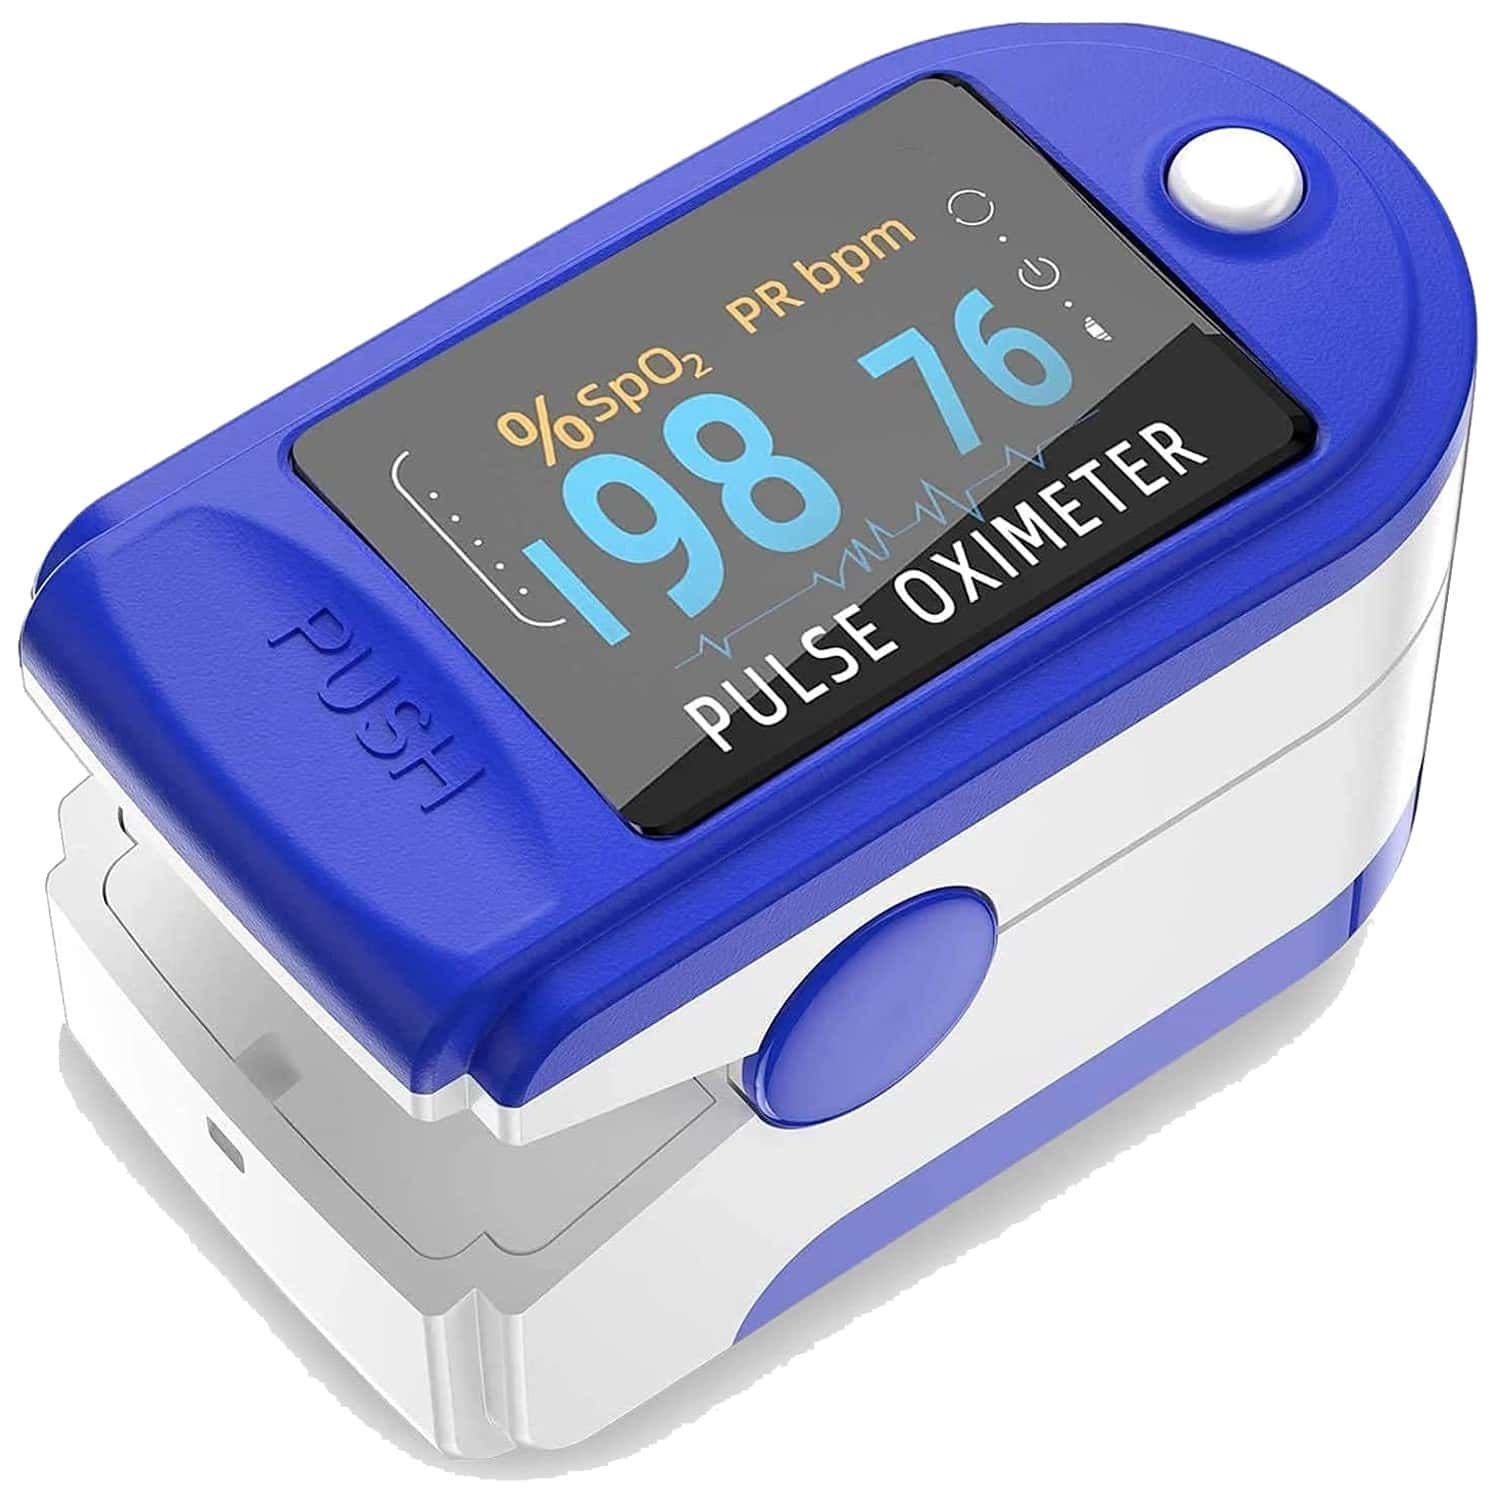 All Care Fingertip Pulse Oximeter